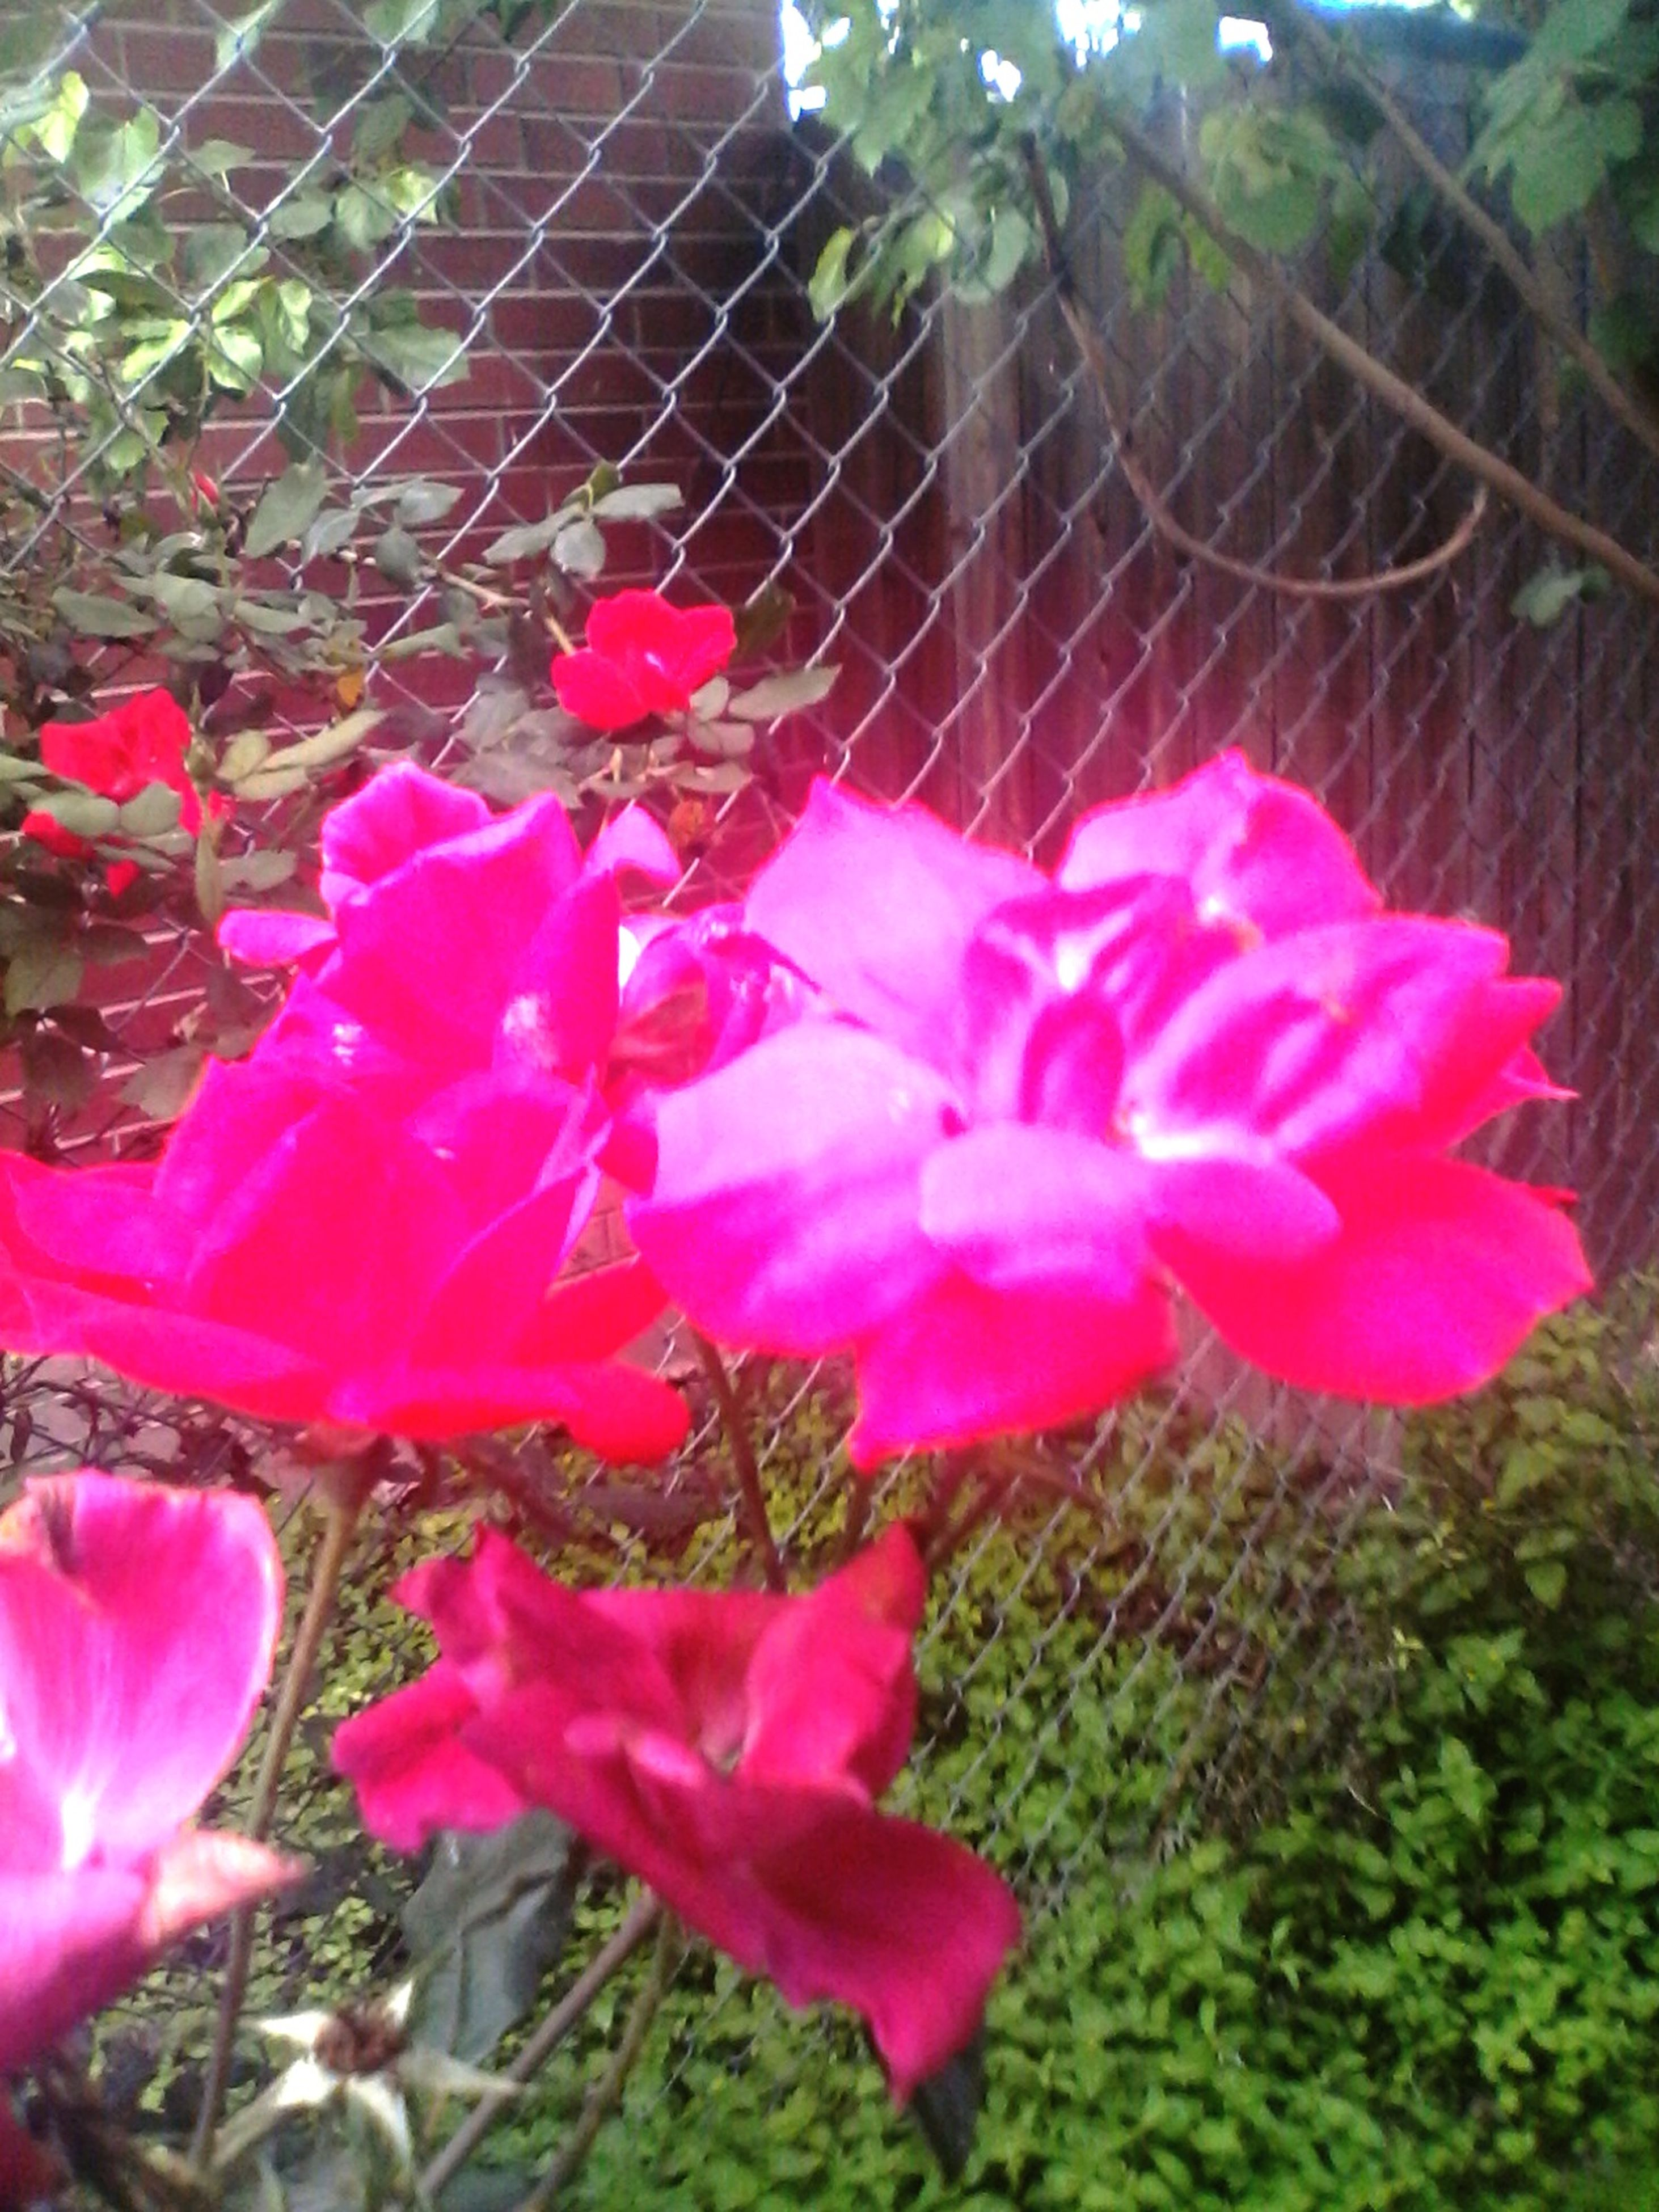 flower, pink color, freshness, fragility, petal, growth, beauty in nature, plant, flower head, nature, blooming, pink, close-up, in bloom, focus on foreground, leaf, red, outdoors, day, blossom